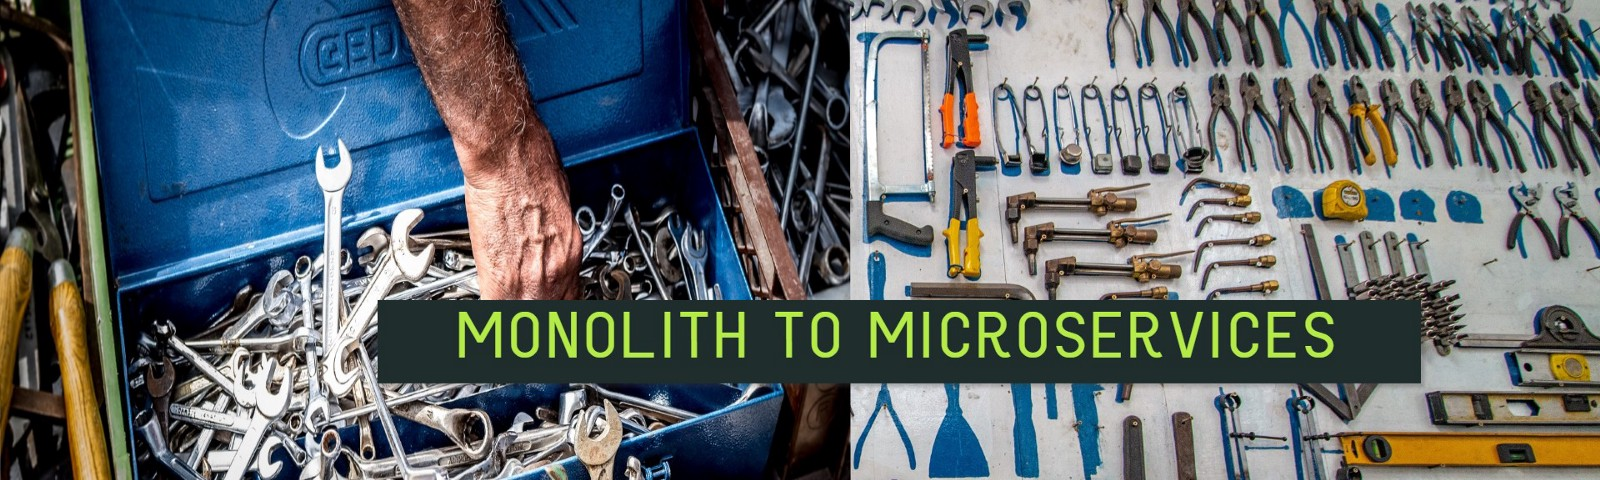 Converting Monolith to Microservices